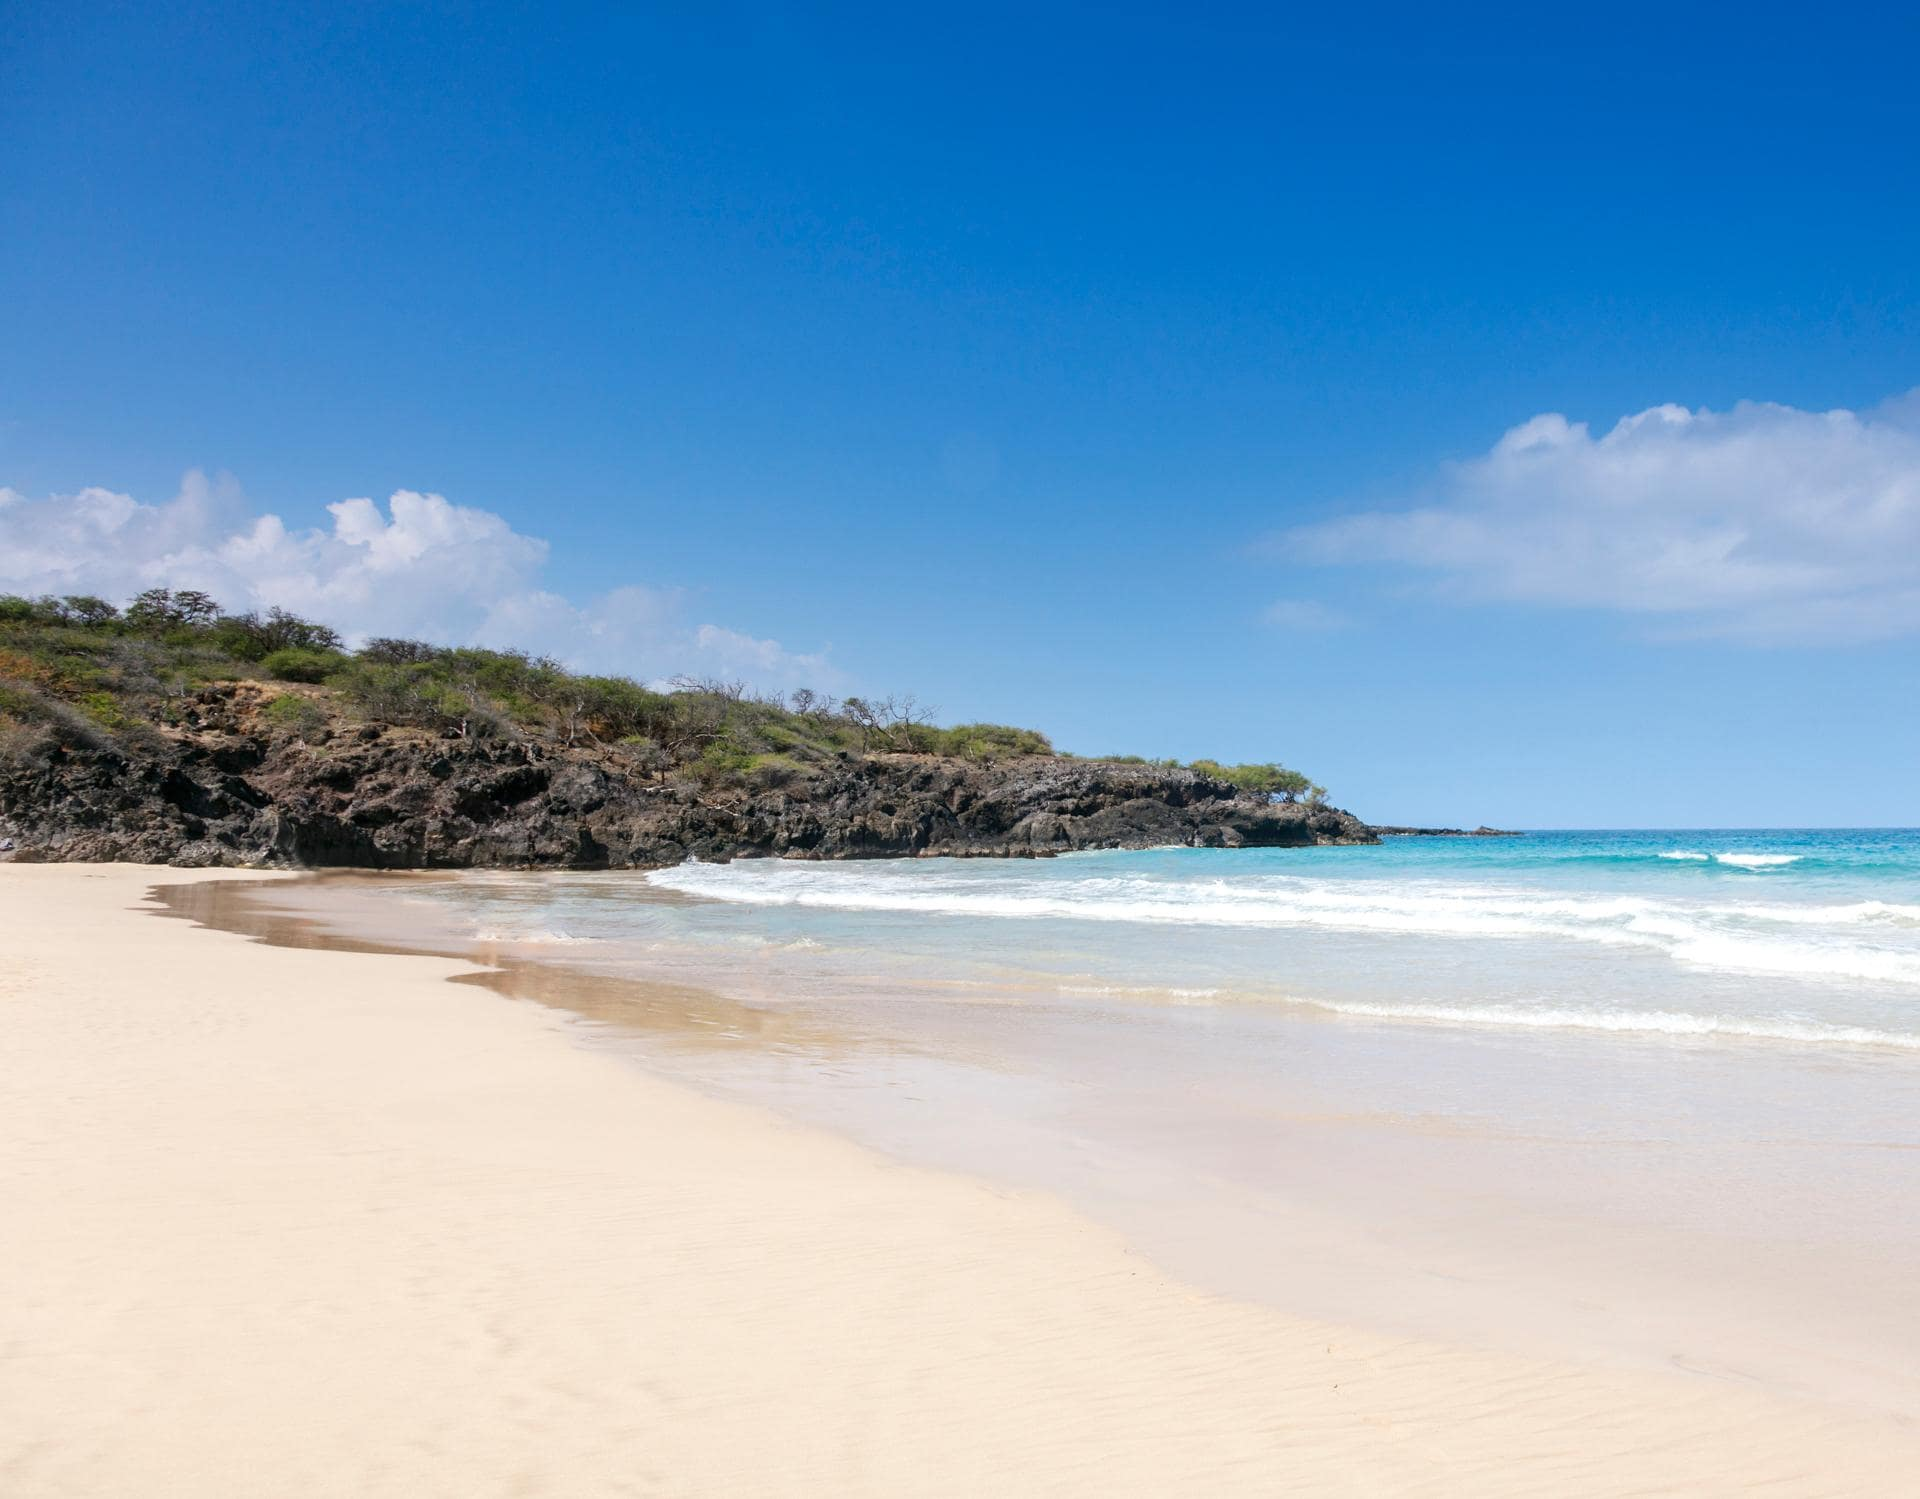 Many other wonderful nearby beaches - Hapuna Beach shown